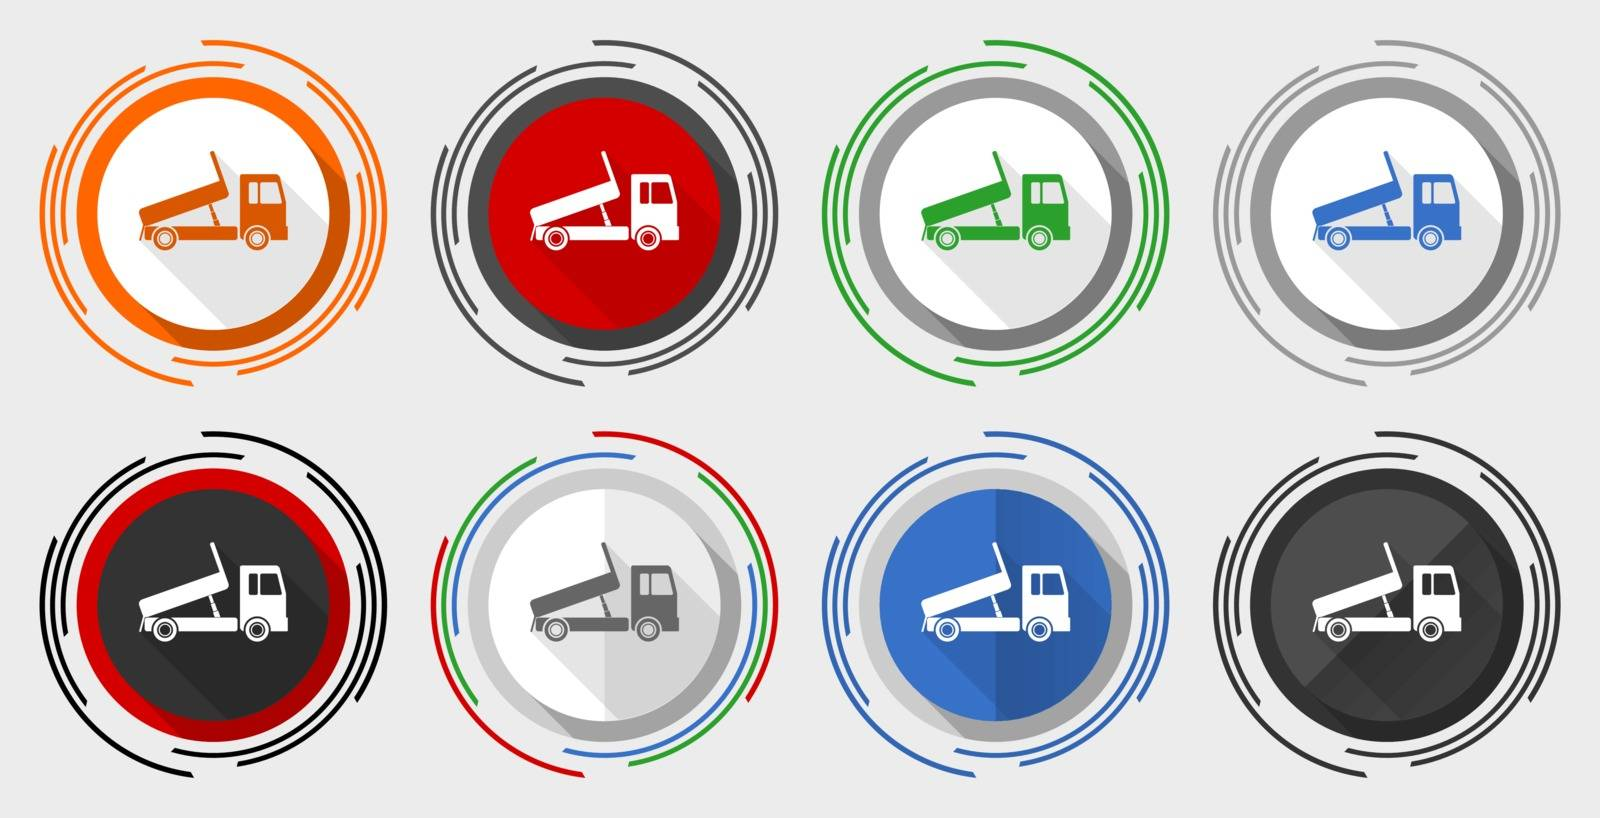 Dump truck vector icon set, transport, transportation modern design flat graphic in 8 options for web design and mobile applications by alexwhite